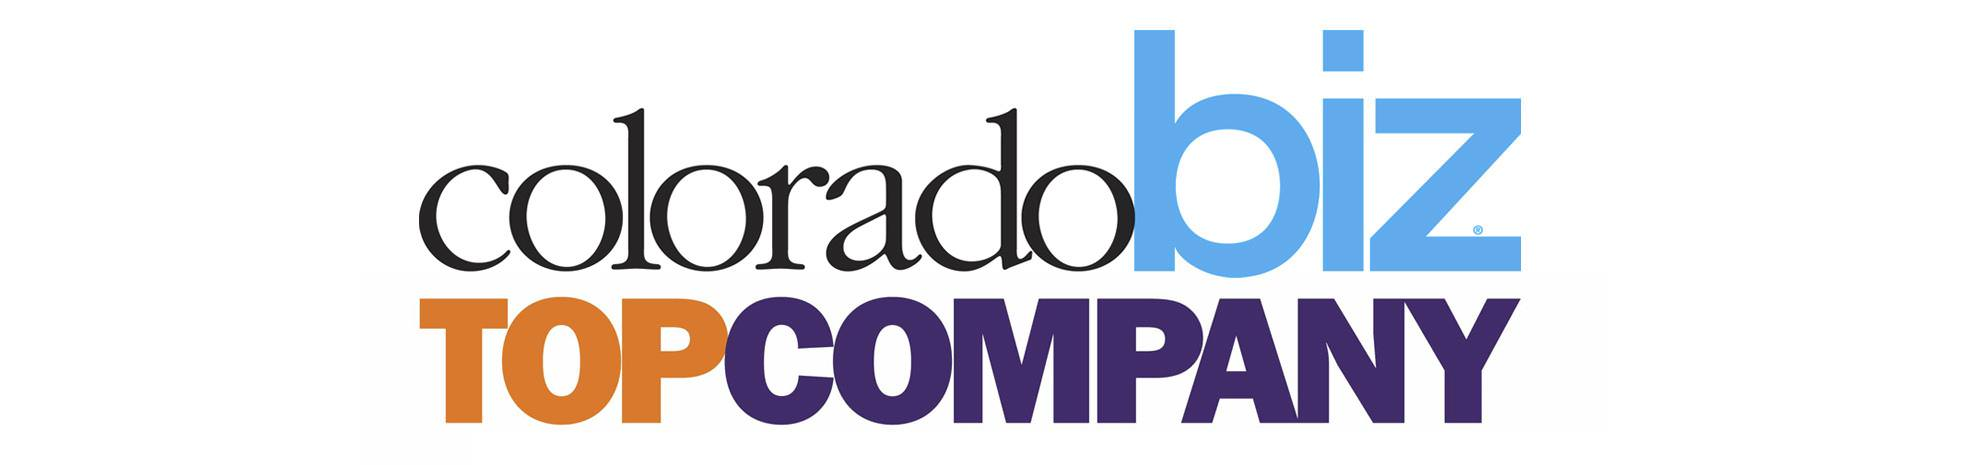 Linhart Pr - Top Private Companies in Colorado